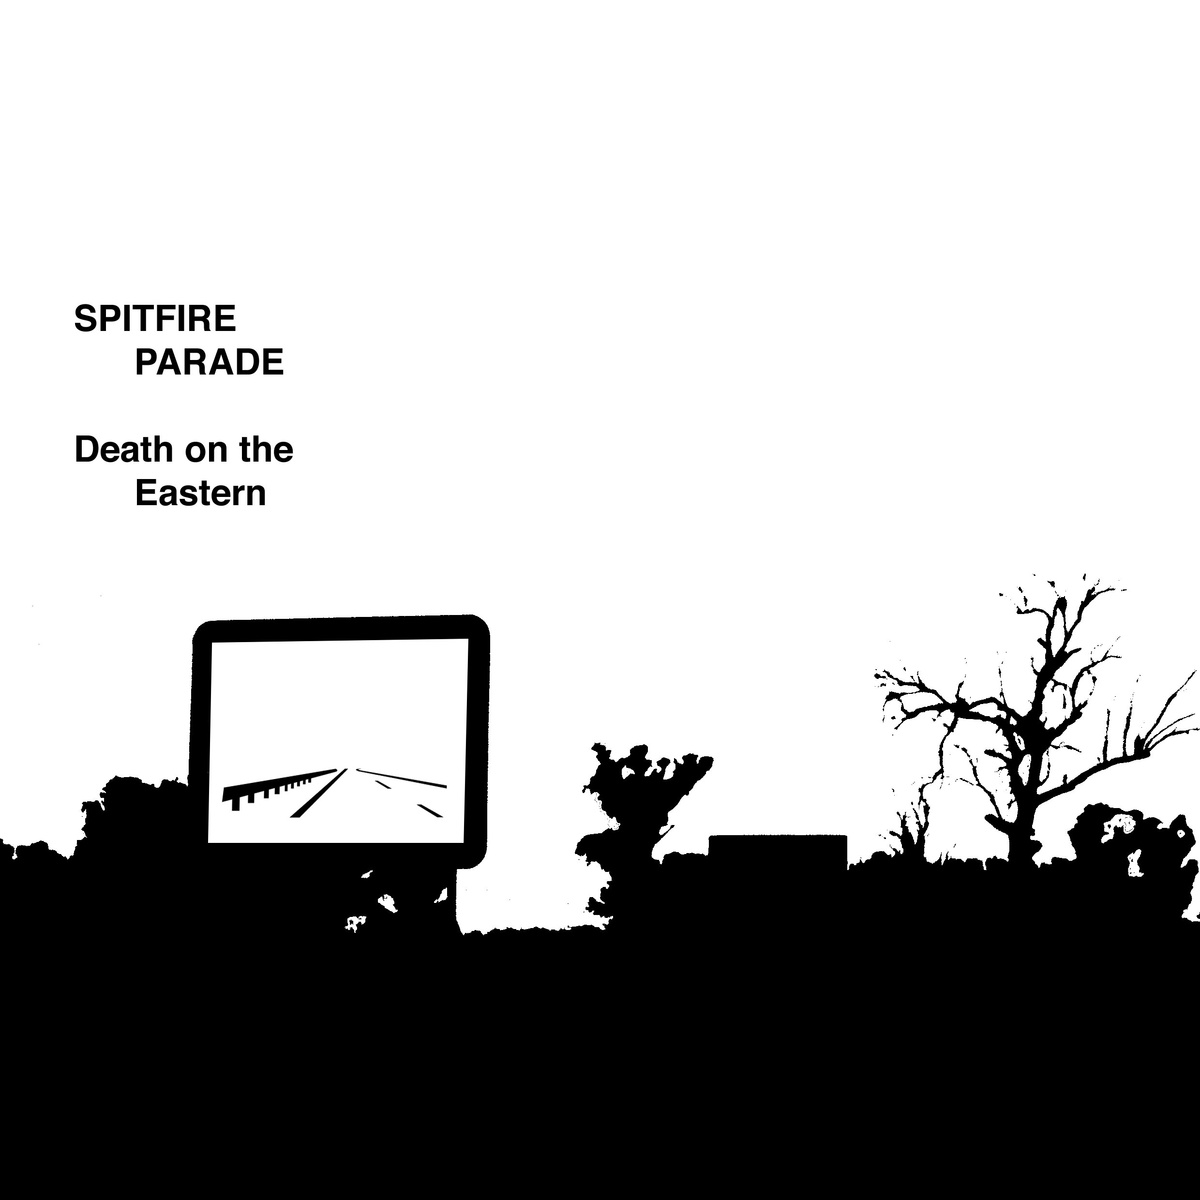 """DEATH ON THE EASTERN (Spitfire Parade album)   CYCLIC DEFROST  Melbourne-based four-piece band Spitfire Parade describe their sound as """"electronically enhanced Ballardian drone-punk"""", and this latest independent release 'Death On The Eastern' follows on from several other Bandcamp releases over the past year and a half, the most recent being 2009′s 'Now' remix collection. When I listened to the intro track here, 'Slaughterhouse Of Failure', which opens from what sounds like a stolen answering machine sample of an elderly relative leaving a message about dinner, only for buzzing, 'mock-inspirational' analogue synths and ascending metallic guitar solos to suddenly lock in around samples of a motivational religious speaker [in 'This Time'], the first associations triggered here for me were early nineties Sydney electro-punk pranksters Mr Floppy. Indeed, the punky, deliberately primitivist ['Seconds'] certainly calls to mind at least a few flashbacks to Mr. Floppy's classic 'Homebrew', with its yelled, thuggy vocals and Suicide-style blur of cheap drum machine rhythms, but in this case, it's more a Buzzcocks meets Primal Scream circa 'Xtrminator' vibe that Spitfire Parade are really going for.  There's certainly an impressive amount of lateral experimentation going on amongst this album's comparatively brief 36 minute running time, ranging from 'Rattlesnake's jagged fusion of free-jazz horn bursts, sinuous post-punk bass figures and chaotically manipulated samples, through to 'Heatwave's virtual car chase theme, which even manages to throw a mass of video game-style police sirens beneath the trip-hammer drum machines and Mission Of Burma-style punky vocal hooks, and 'When I Get Home's moody flameout of Joy Division-esque guitar noise and tribal programmed rhythms. While the references are often easily to pinpoint here though, in this case it's the quality of the songs themselves that really counts, making Spitfire Parade considerably more than just another in the seemin"""